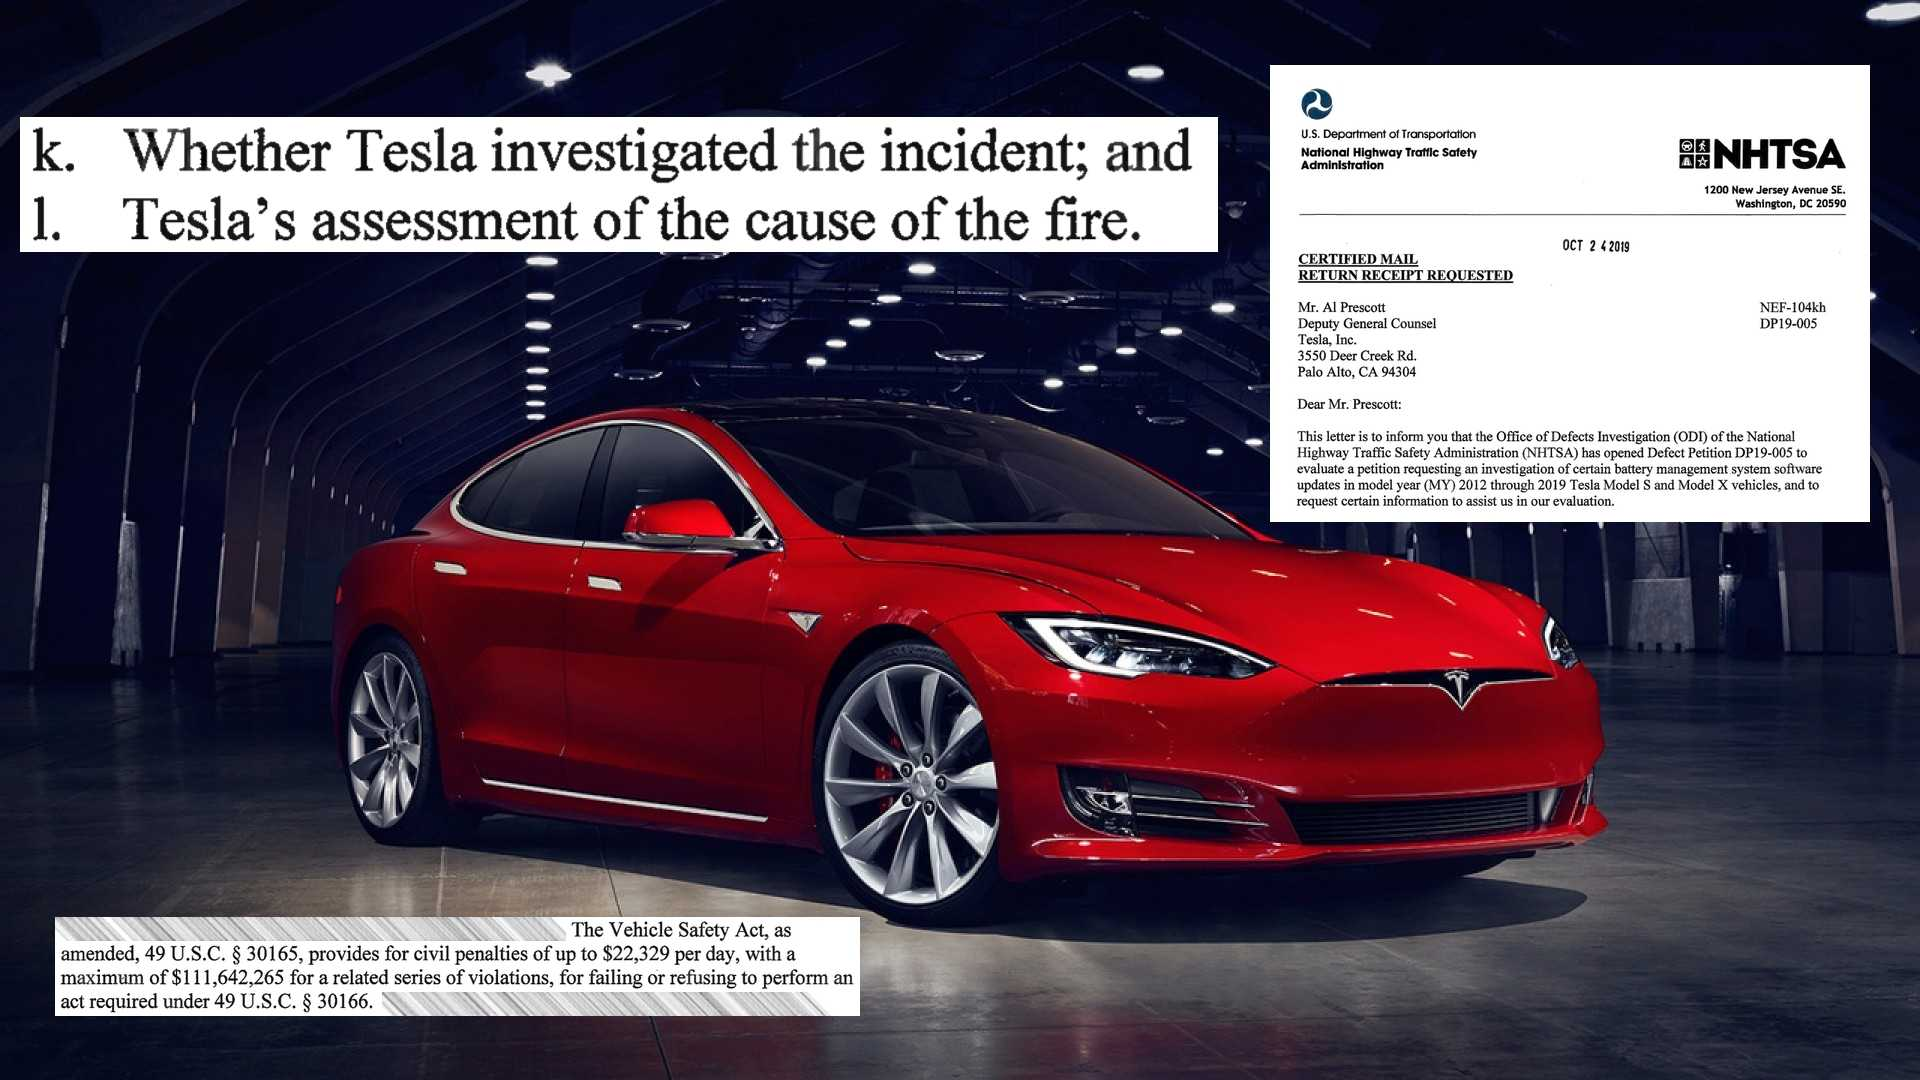 NHTSA Accepted A Defect Petition About Tesla Model S